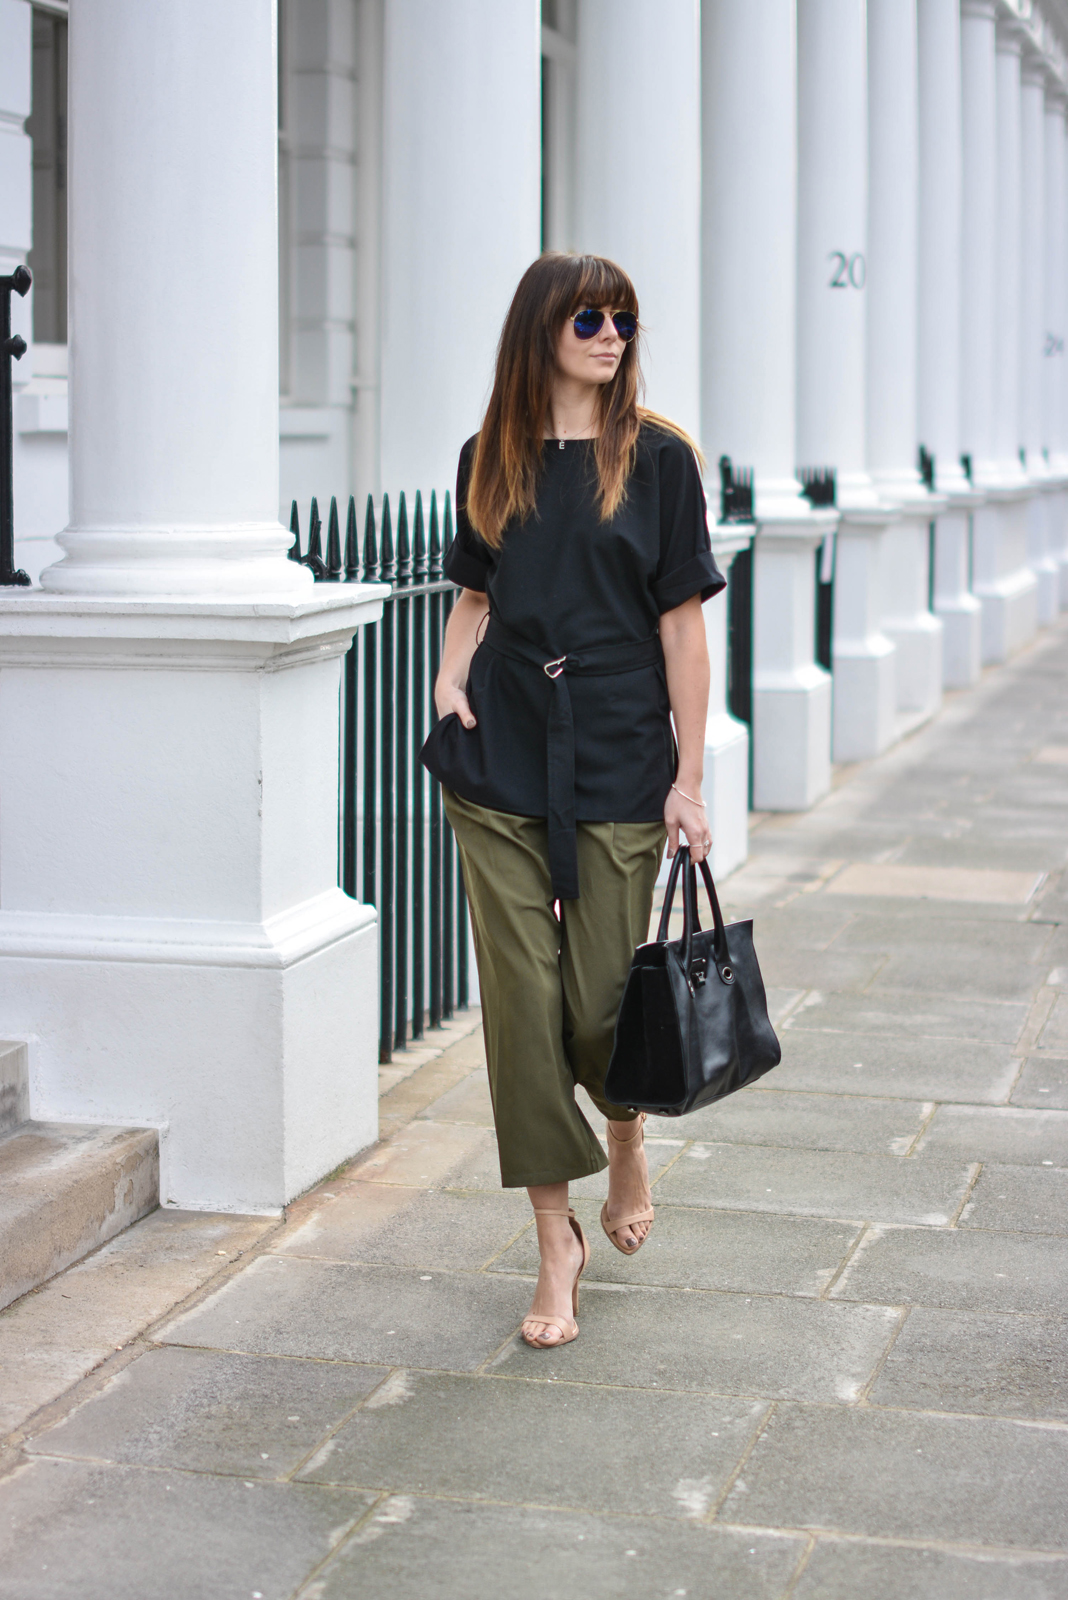 EJSTYLE - Emma Hill, London Street style, SS15, LFW, asos silky Khaki cropped trousers, Jimmy Choo Riley Bag, ASOS d ring black t shirt top, nude strappy sandals, ray ban sunglasses, OOTD